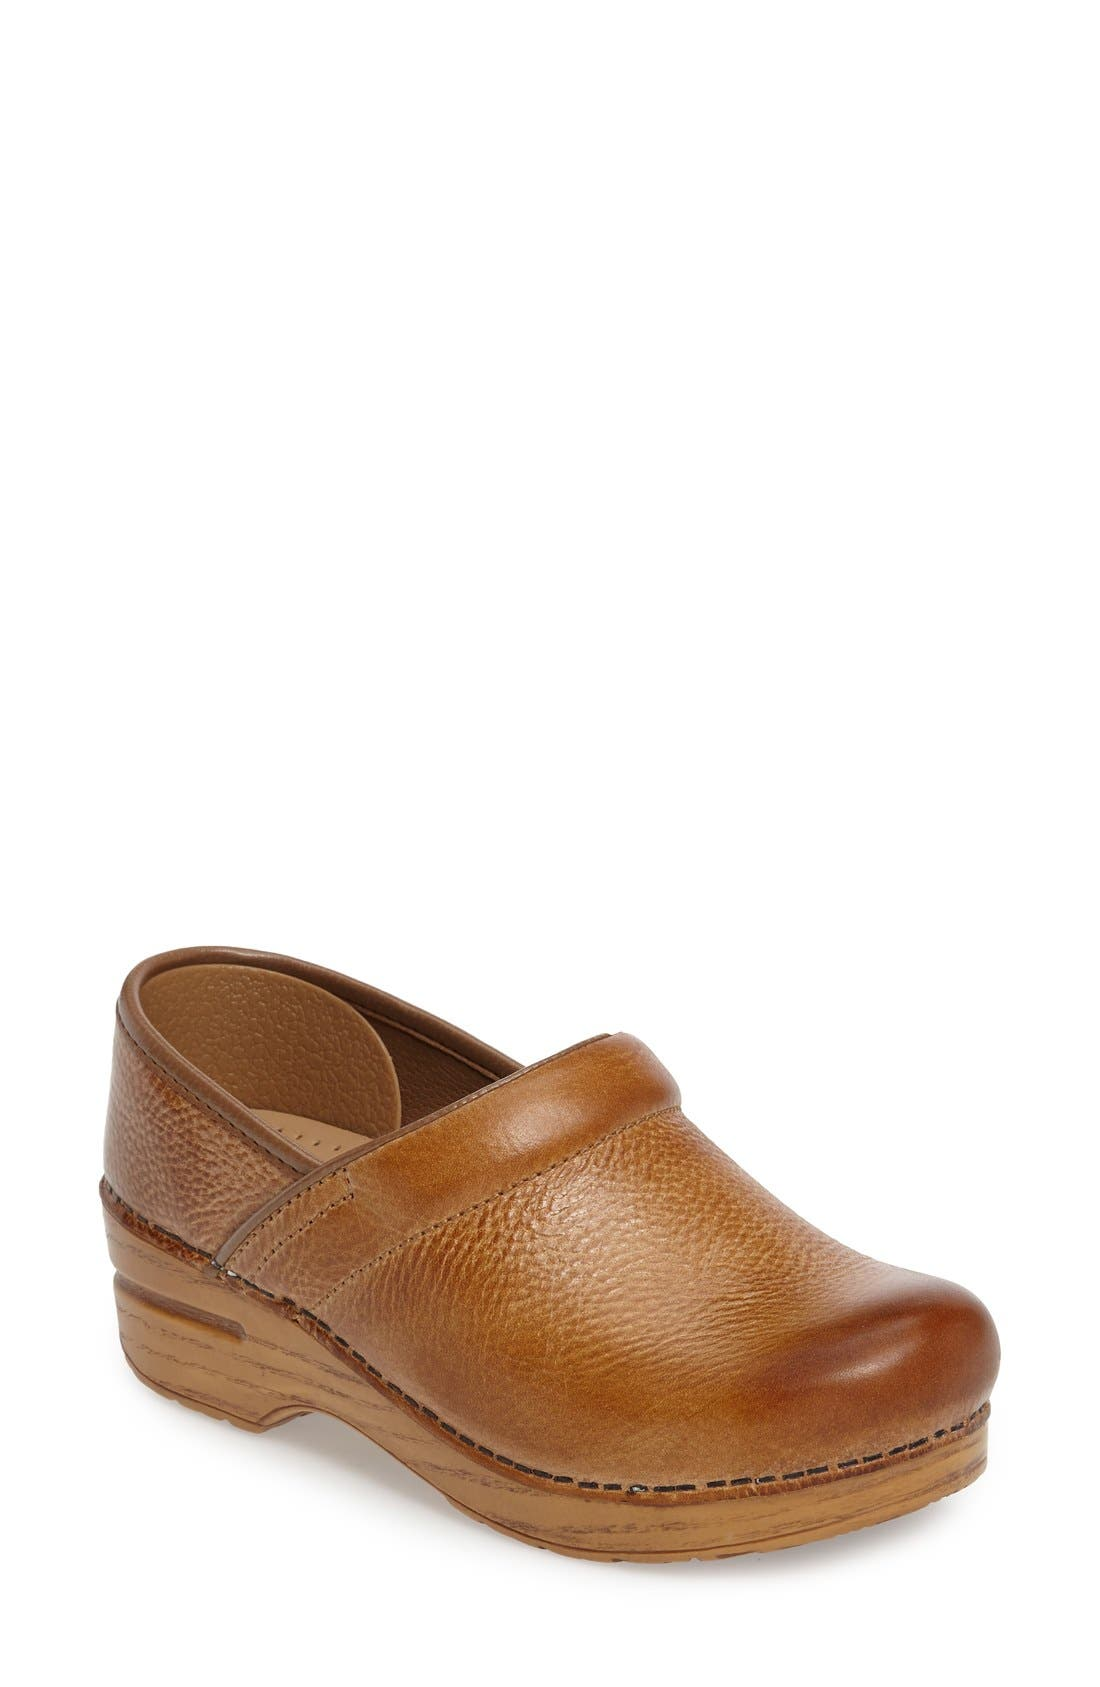 Distressed Professional Clog,                             Main thumbnail 1, color,                             Honey Leather